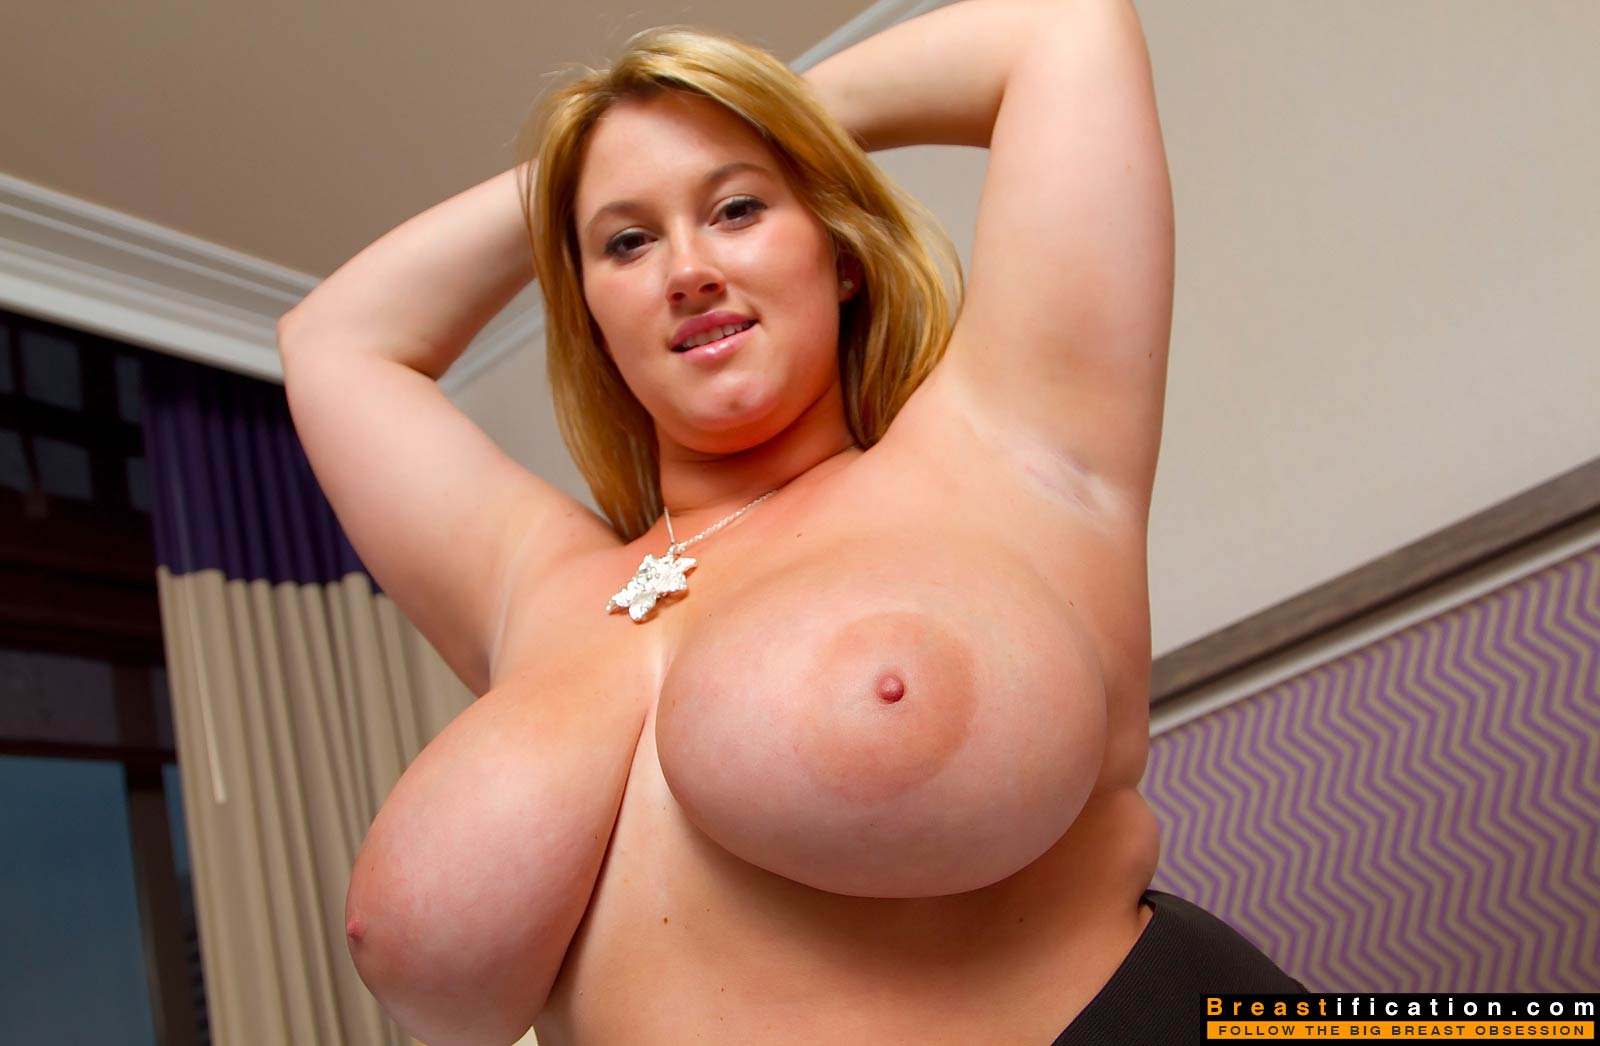 Best of breast busty webcam 03 5